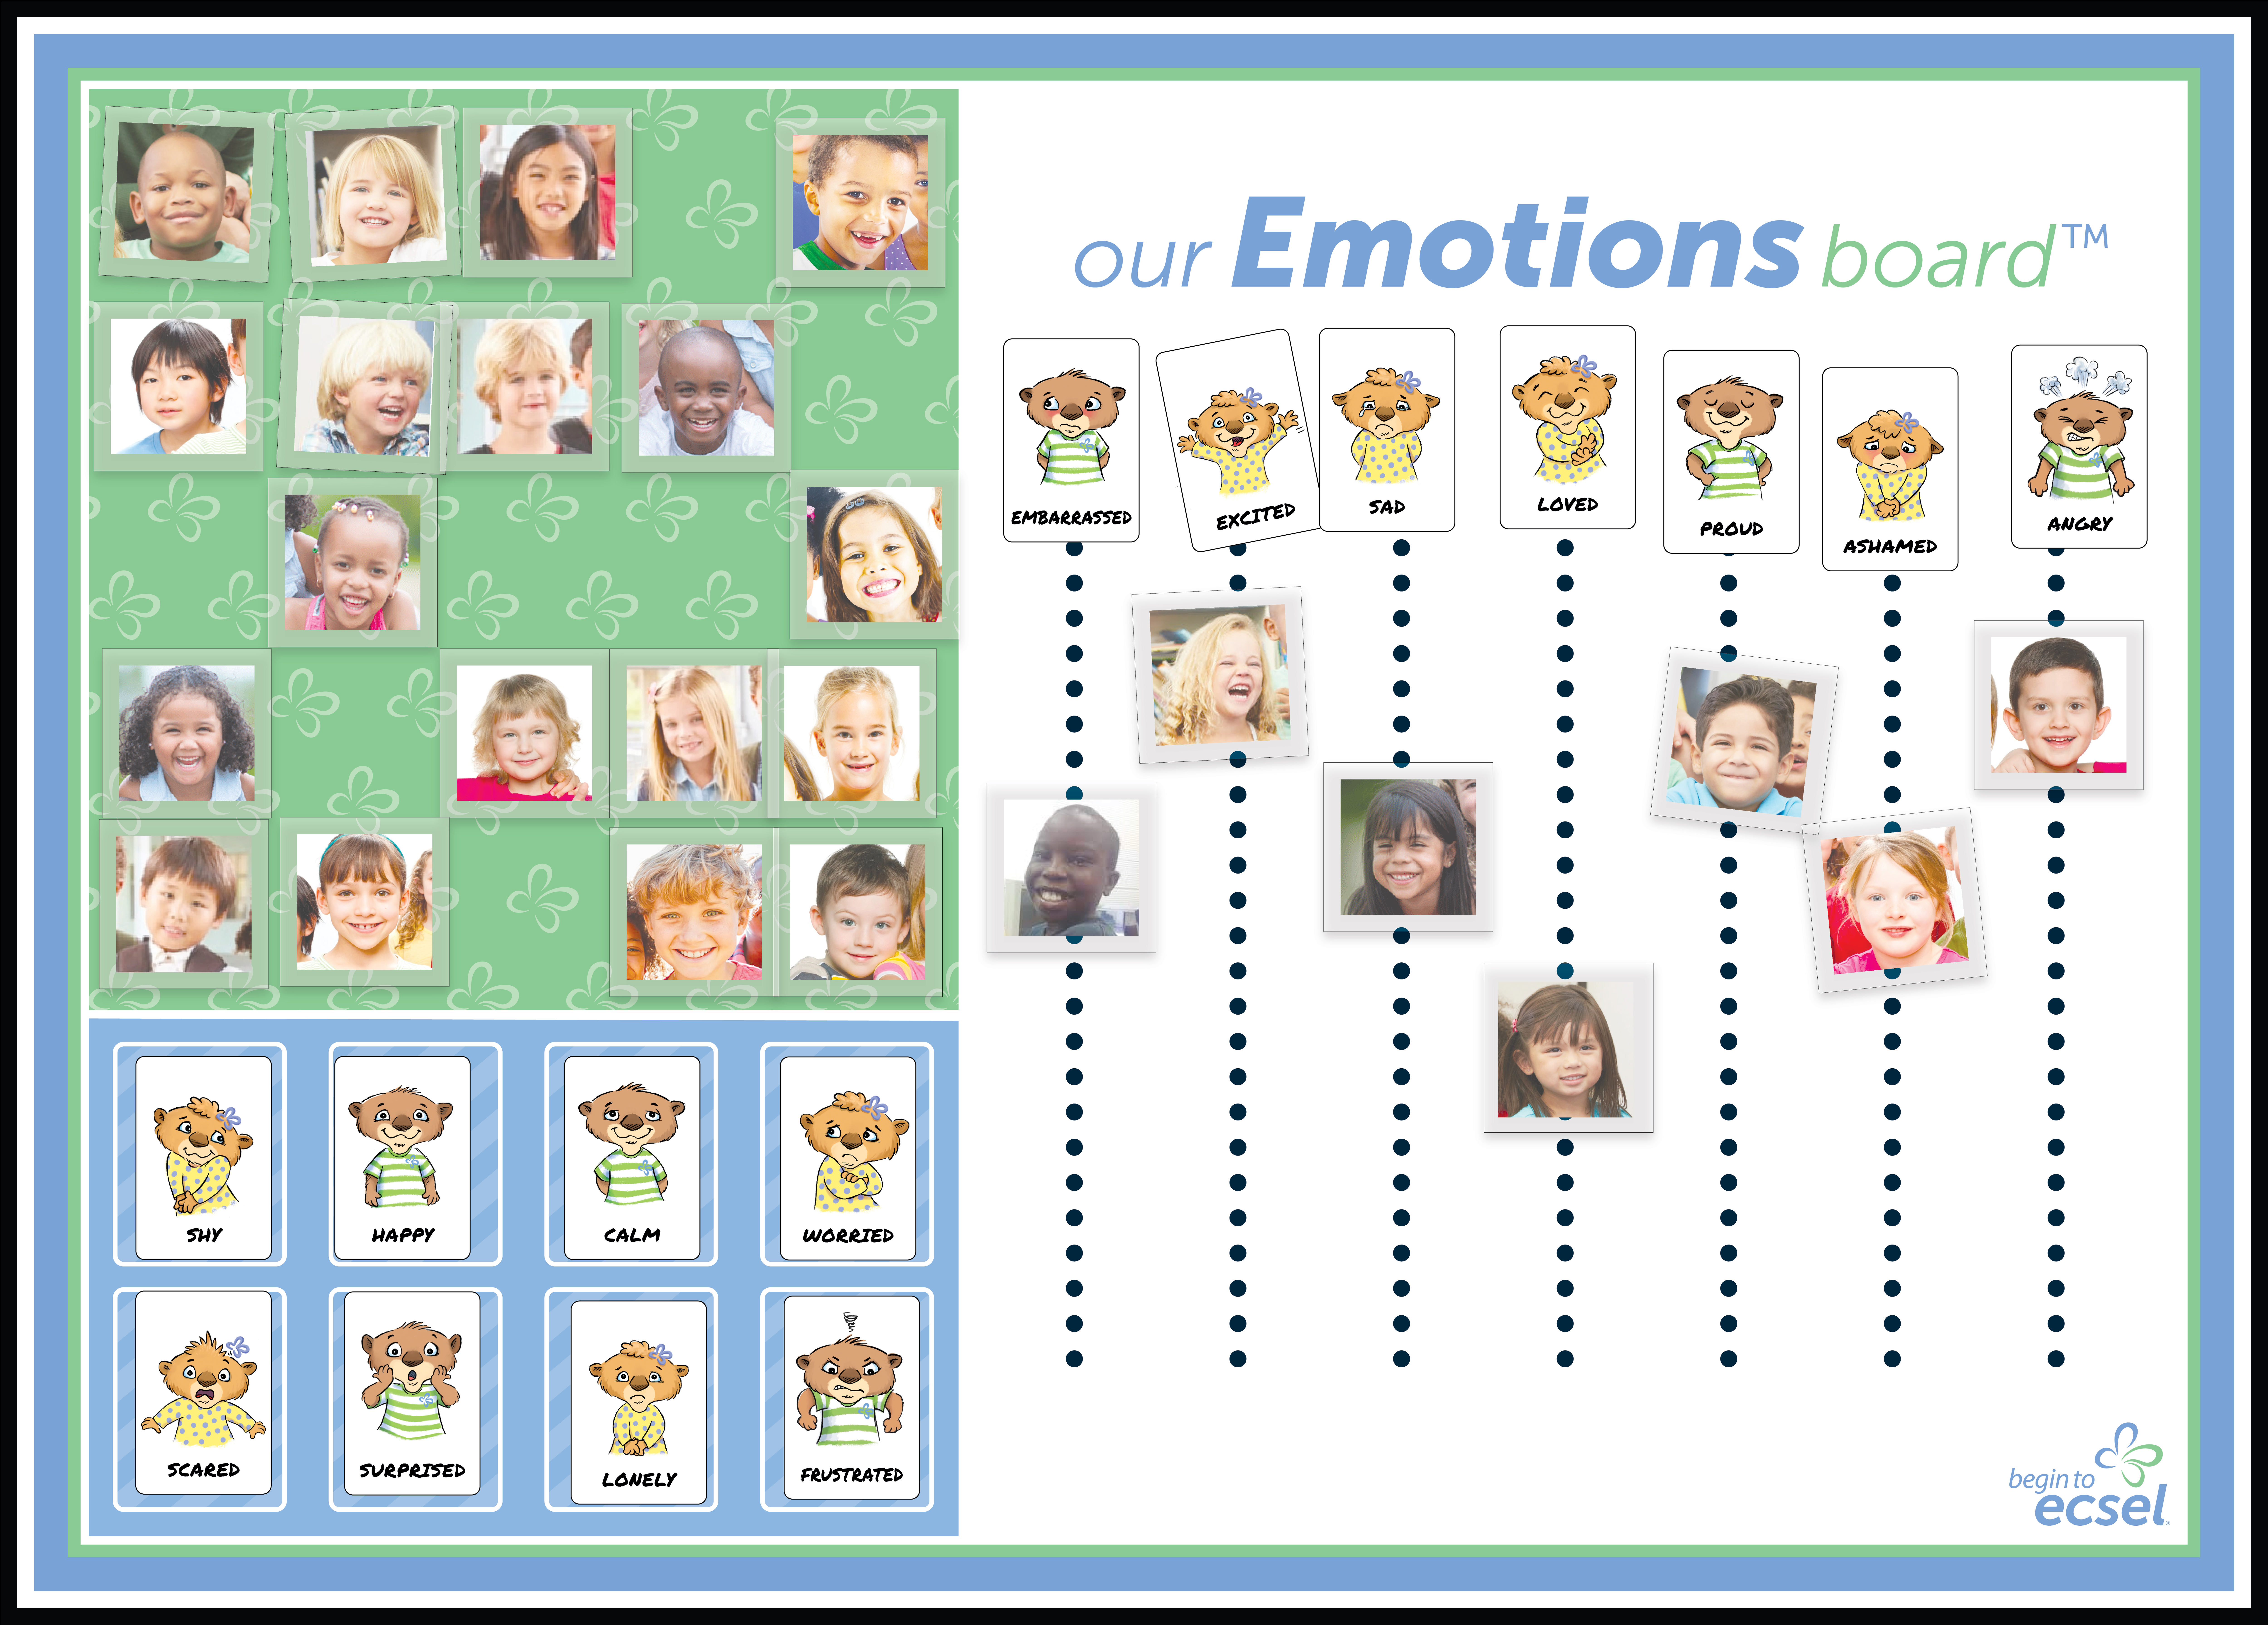 Our Emotions Board